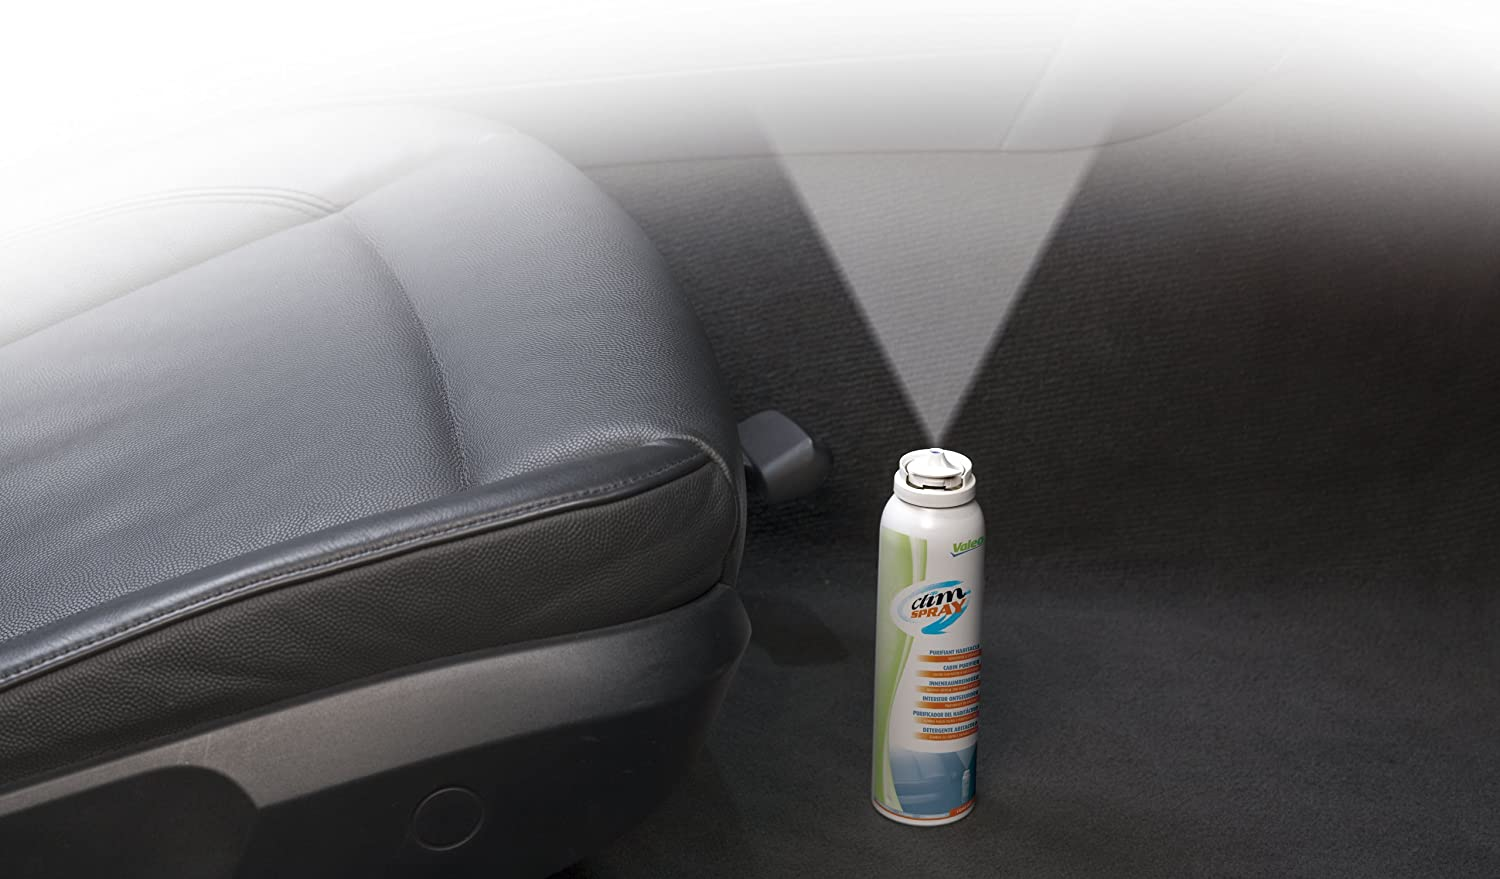 Valeo ClimSpray for vehicle cabin receives Virucide certification